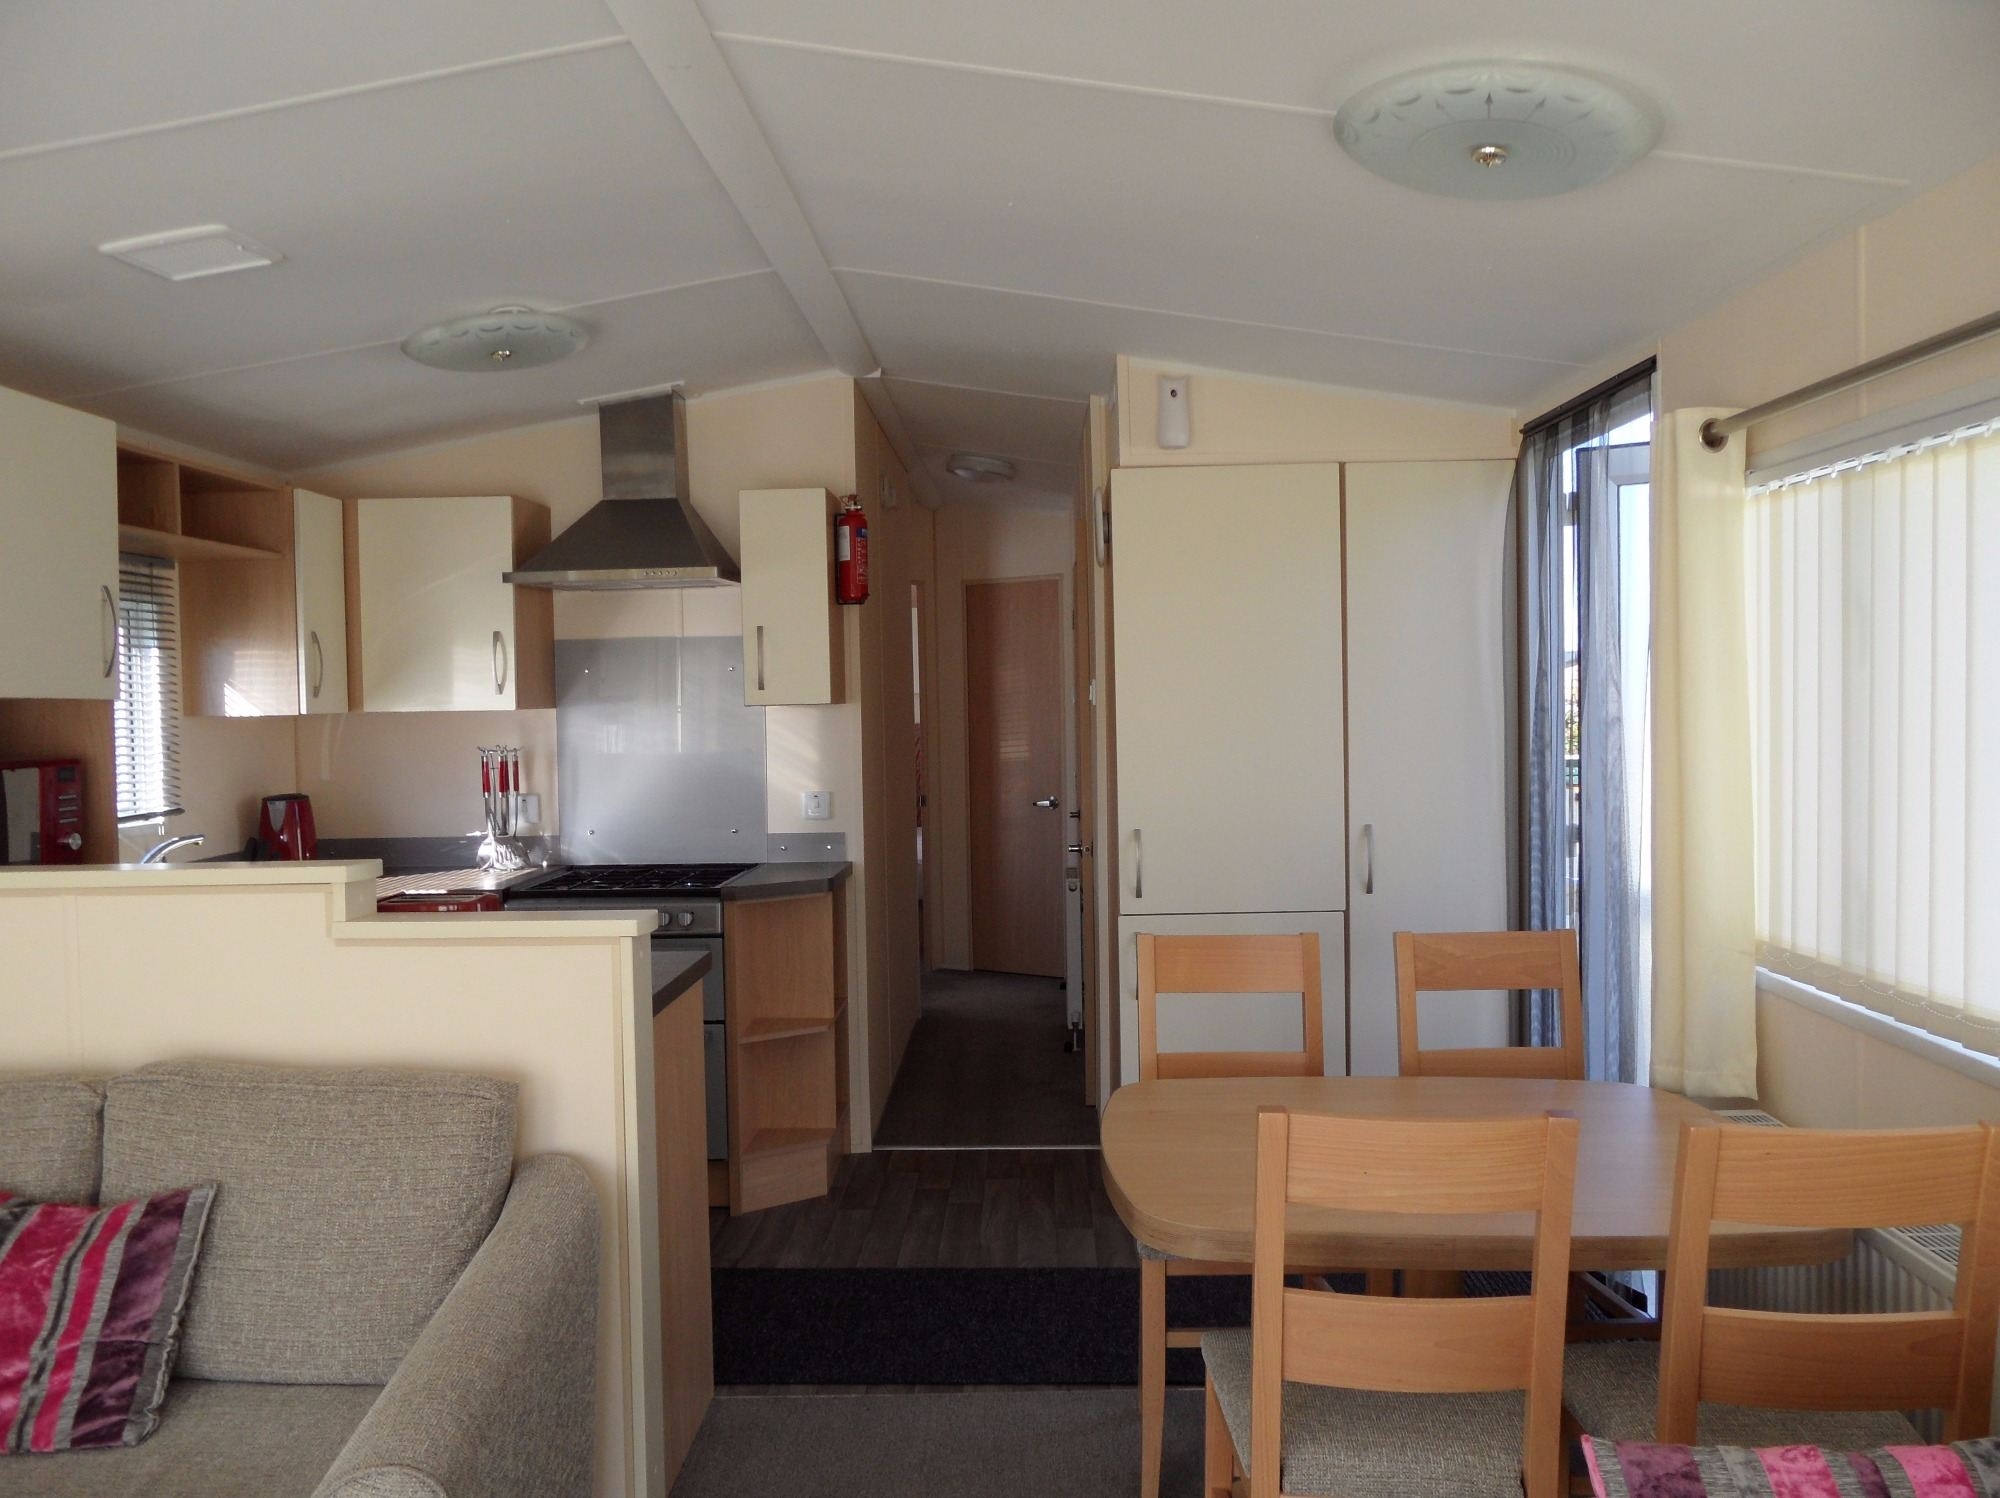 3 bedroom, 8 berth caravan rental Butlins Skegness